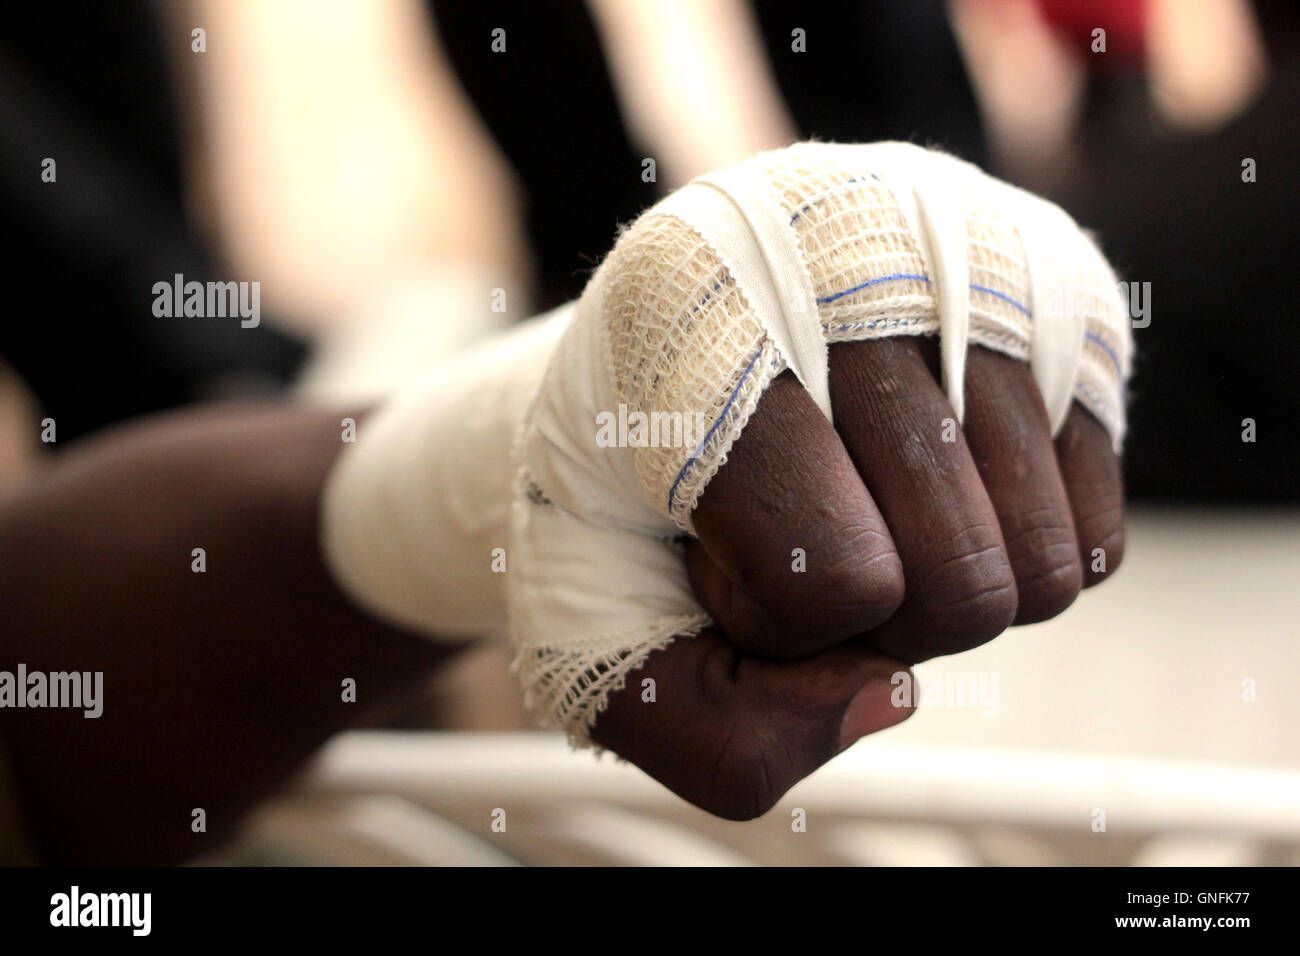 Kampala, Uganda. Aug. 31, 2016. Ugandan boxing coaches attentively following how to tie an Olympic boxing bandage - Stock Image